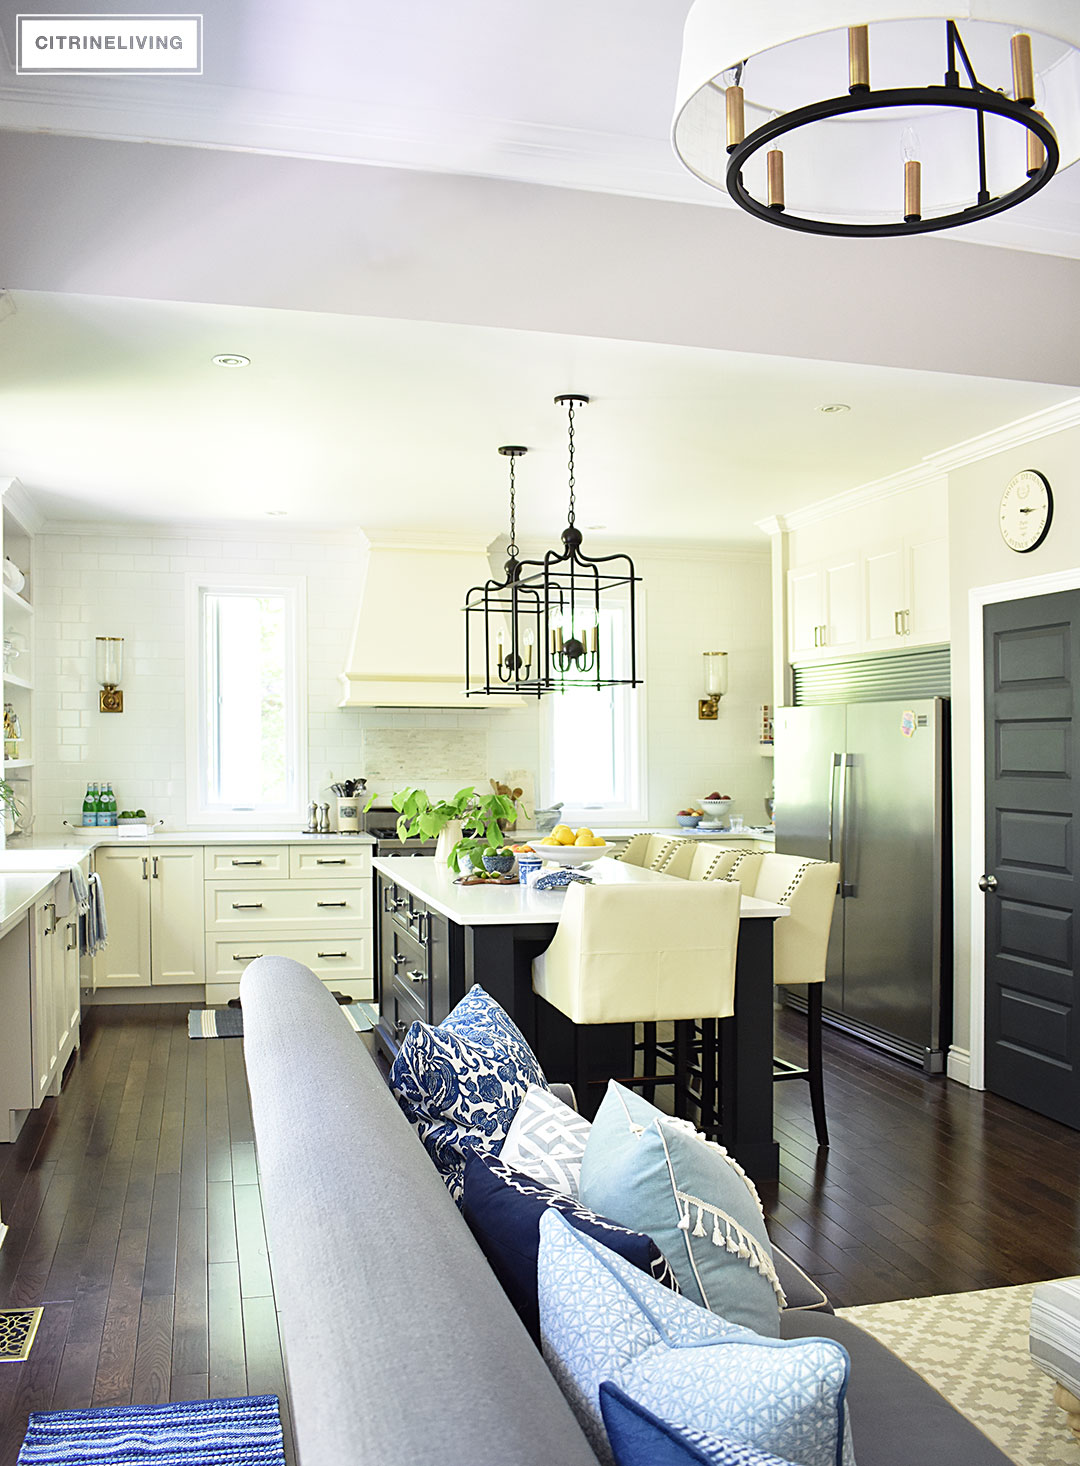 White kitchen with black island decorated for Summer with fresh cute greenery and bowls filled with bright, seasonal fresh fruit for a vibrant punch of seasonal color. Blue and white dishes and bowls are a classic touch.